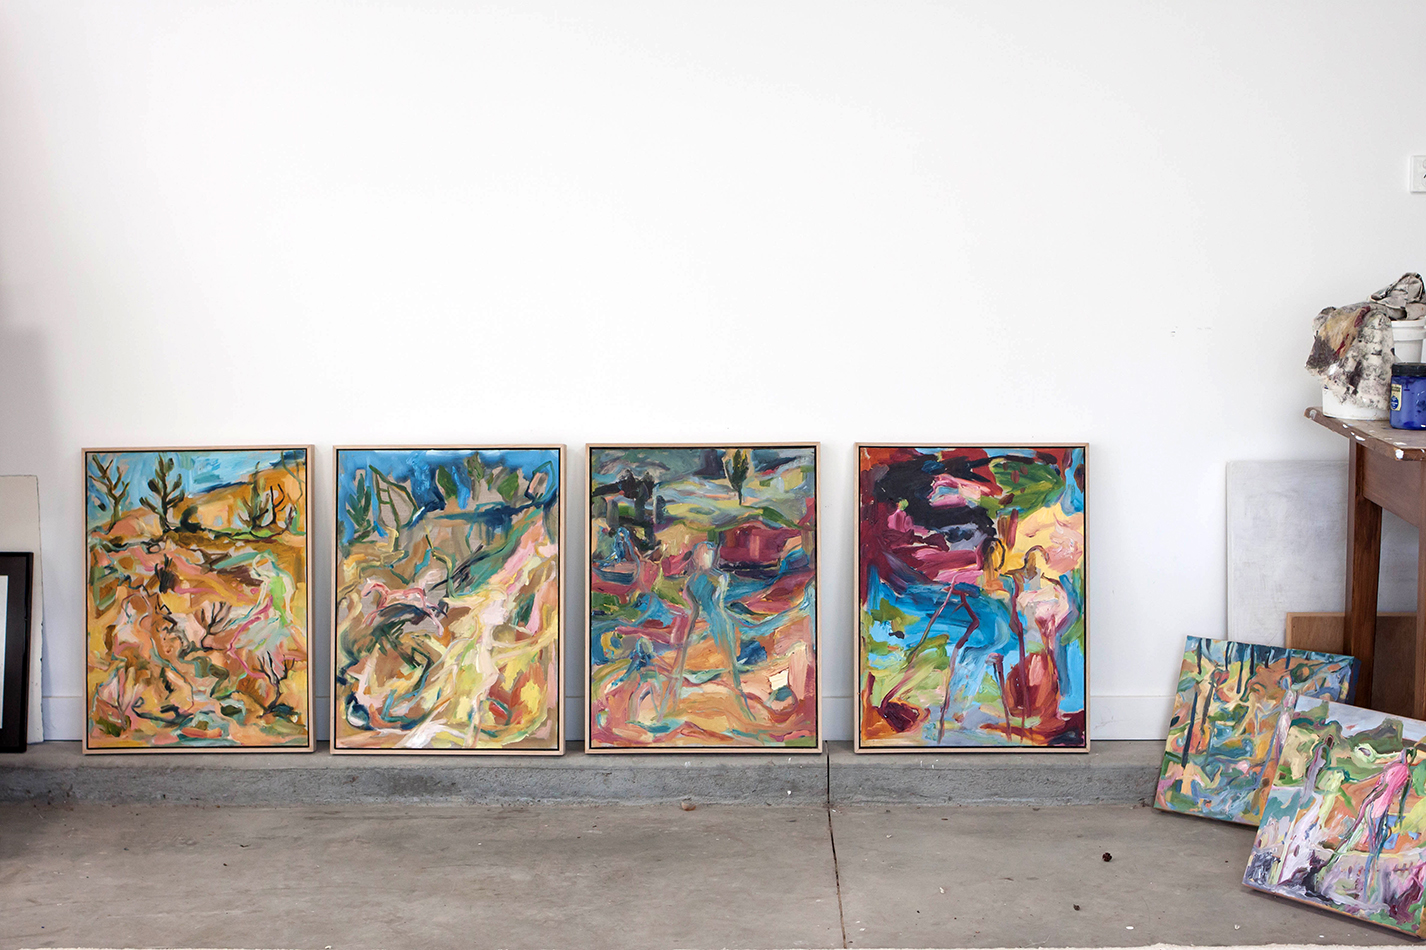 Australian artist Ruth Stone, studio visit and interview for The Corner Store Gallery, photograph by Madeline Young